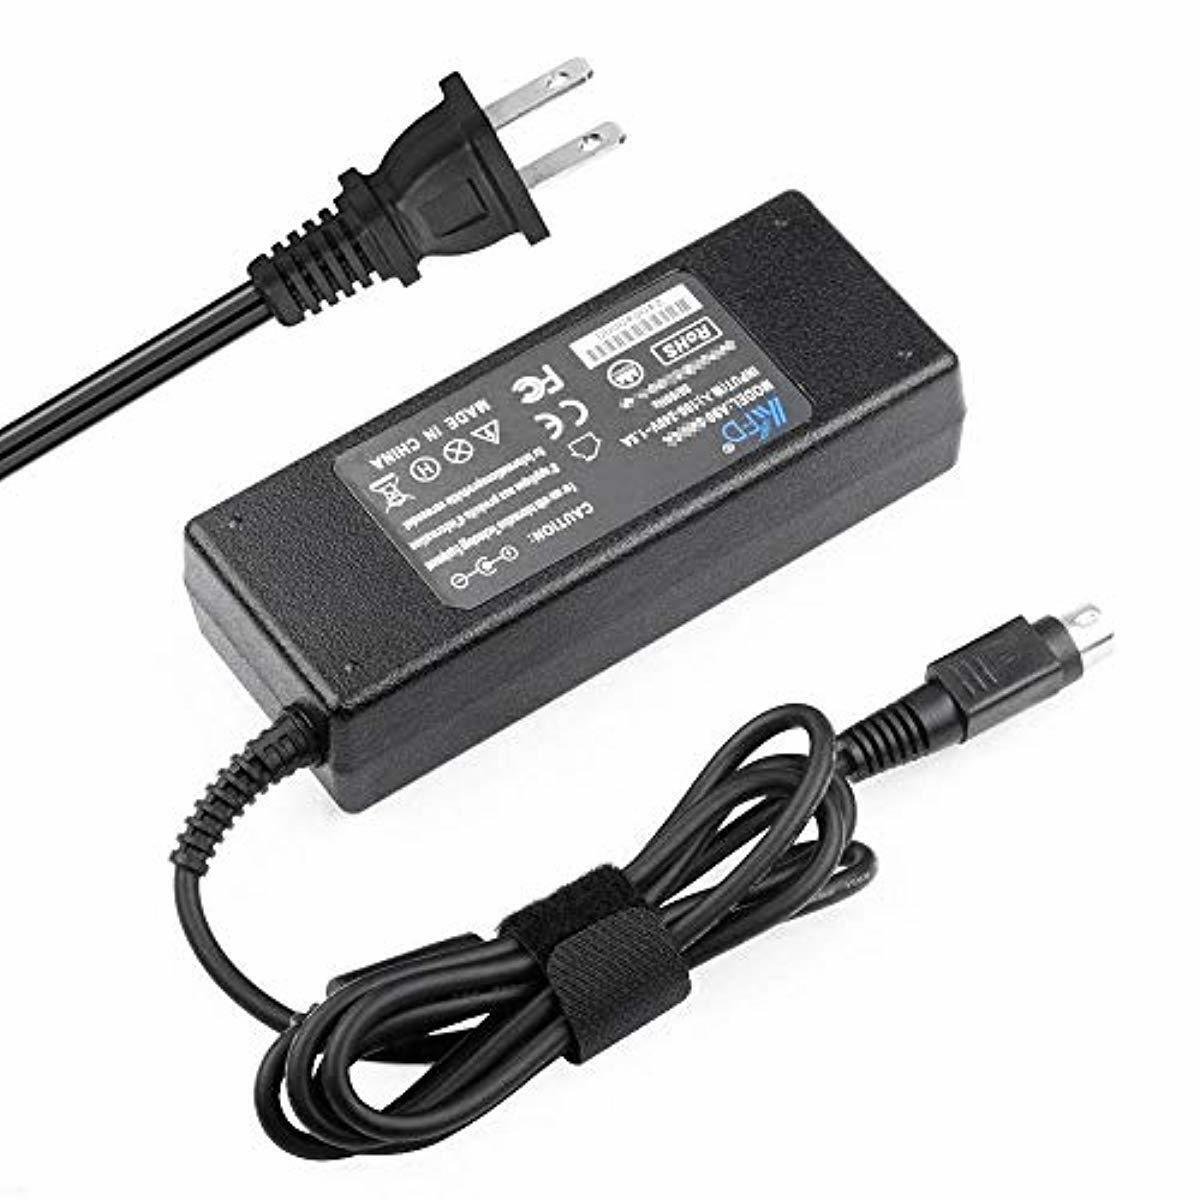 KFD AC Adapter R270-7198 DA-90A24 IP21 for ResMed Model No.